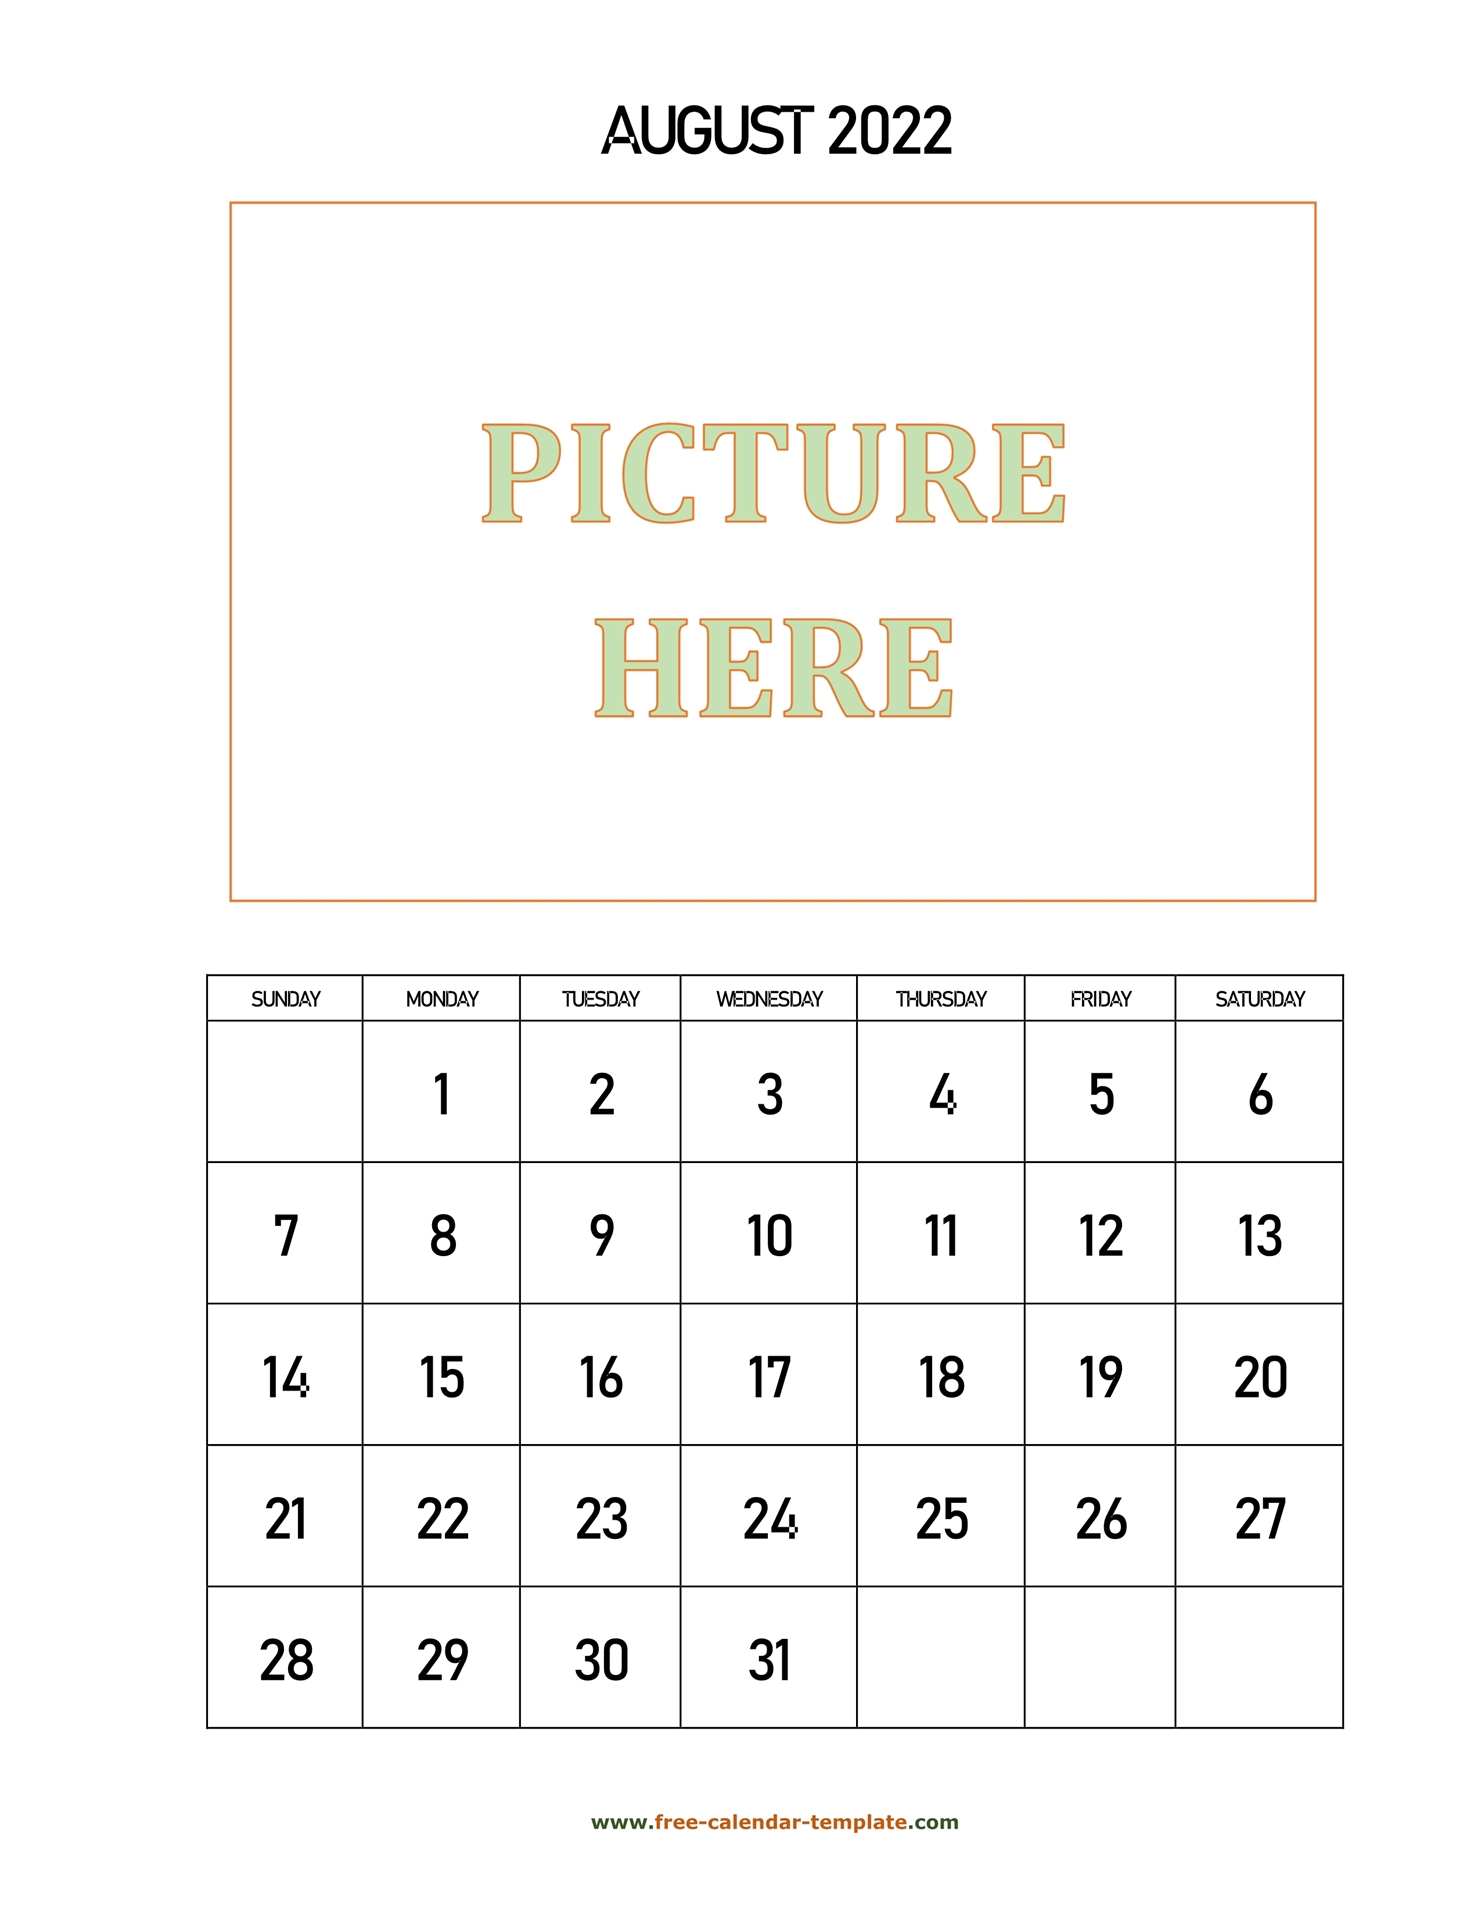 August Printable 2022 Calendar, Space For Add Picture